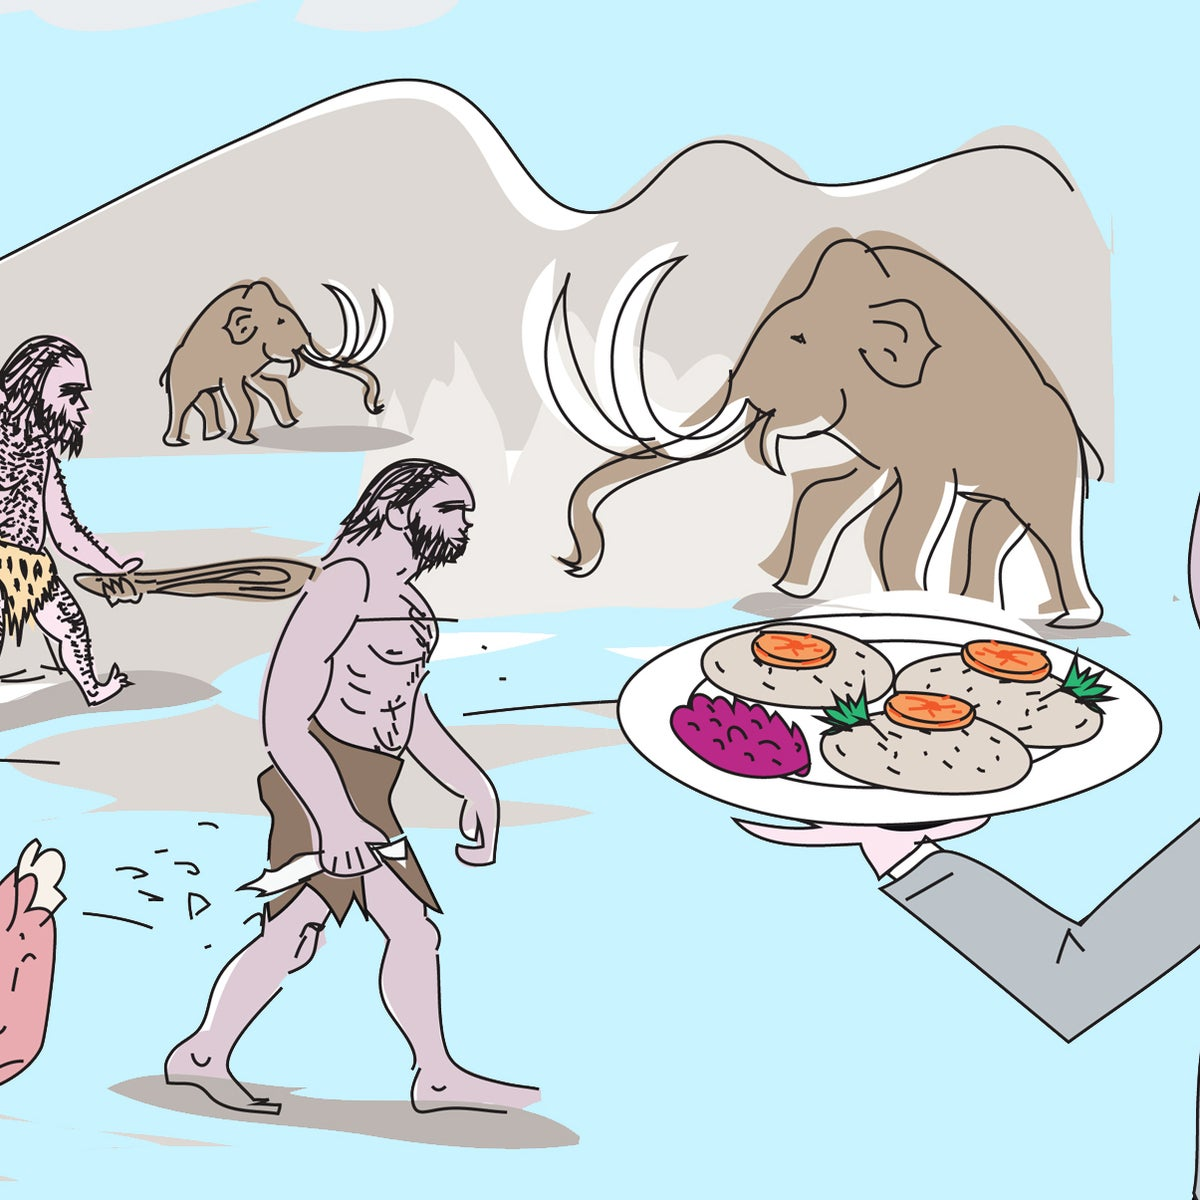 Illustration: Gideon Levy holds a plate with gefilte fish as cavemen walk around in the background.